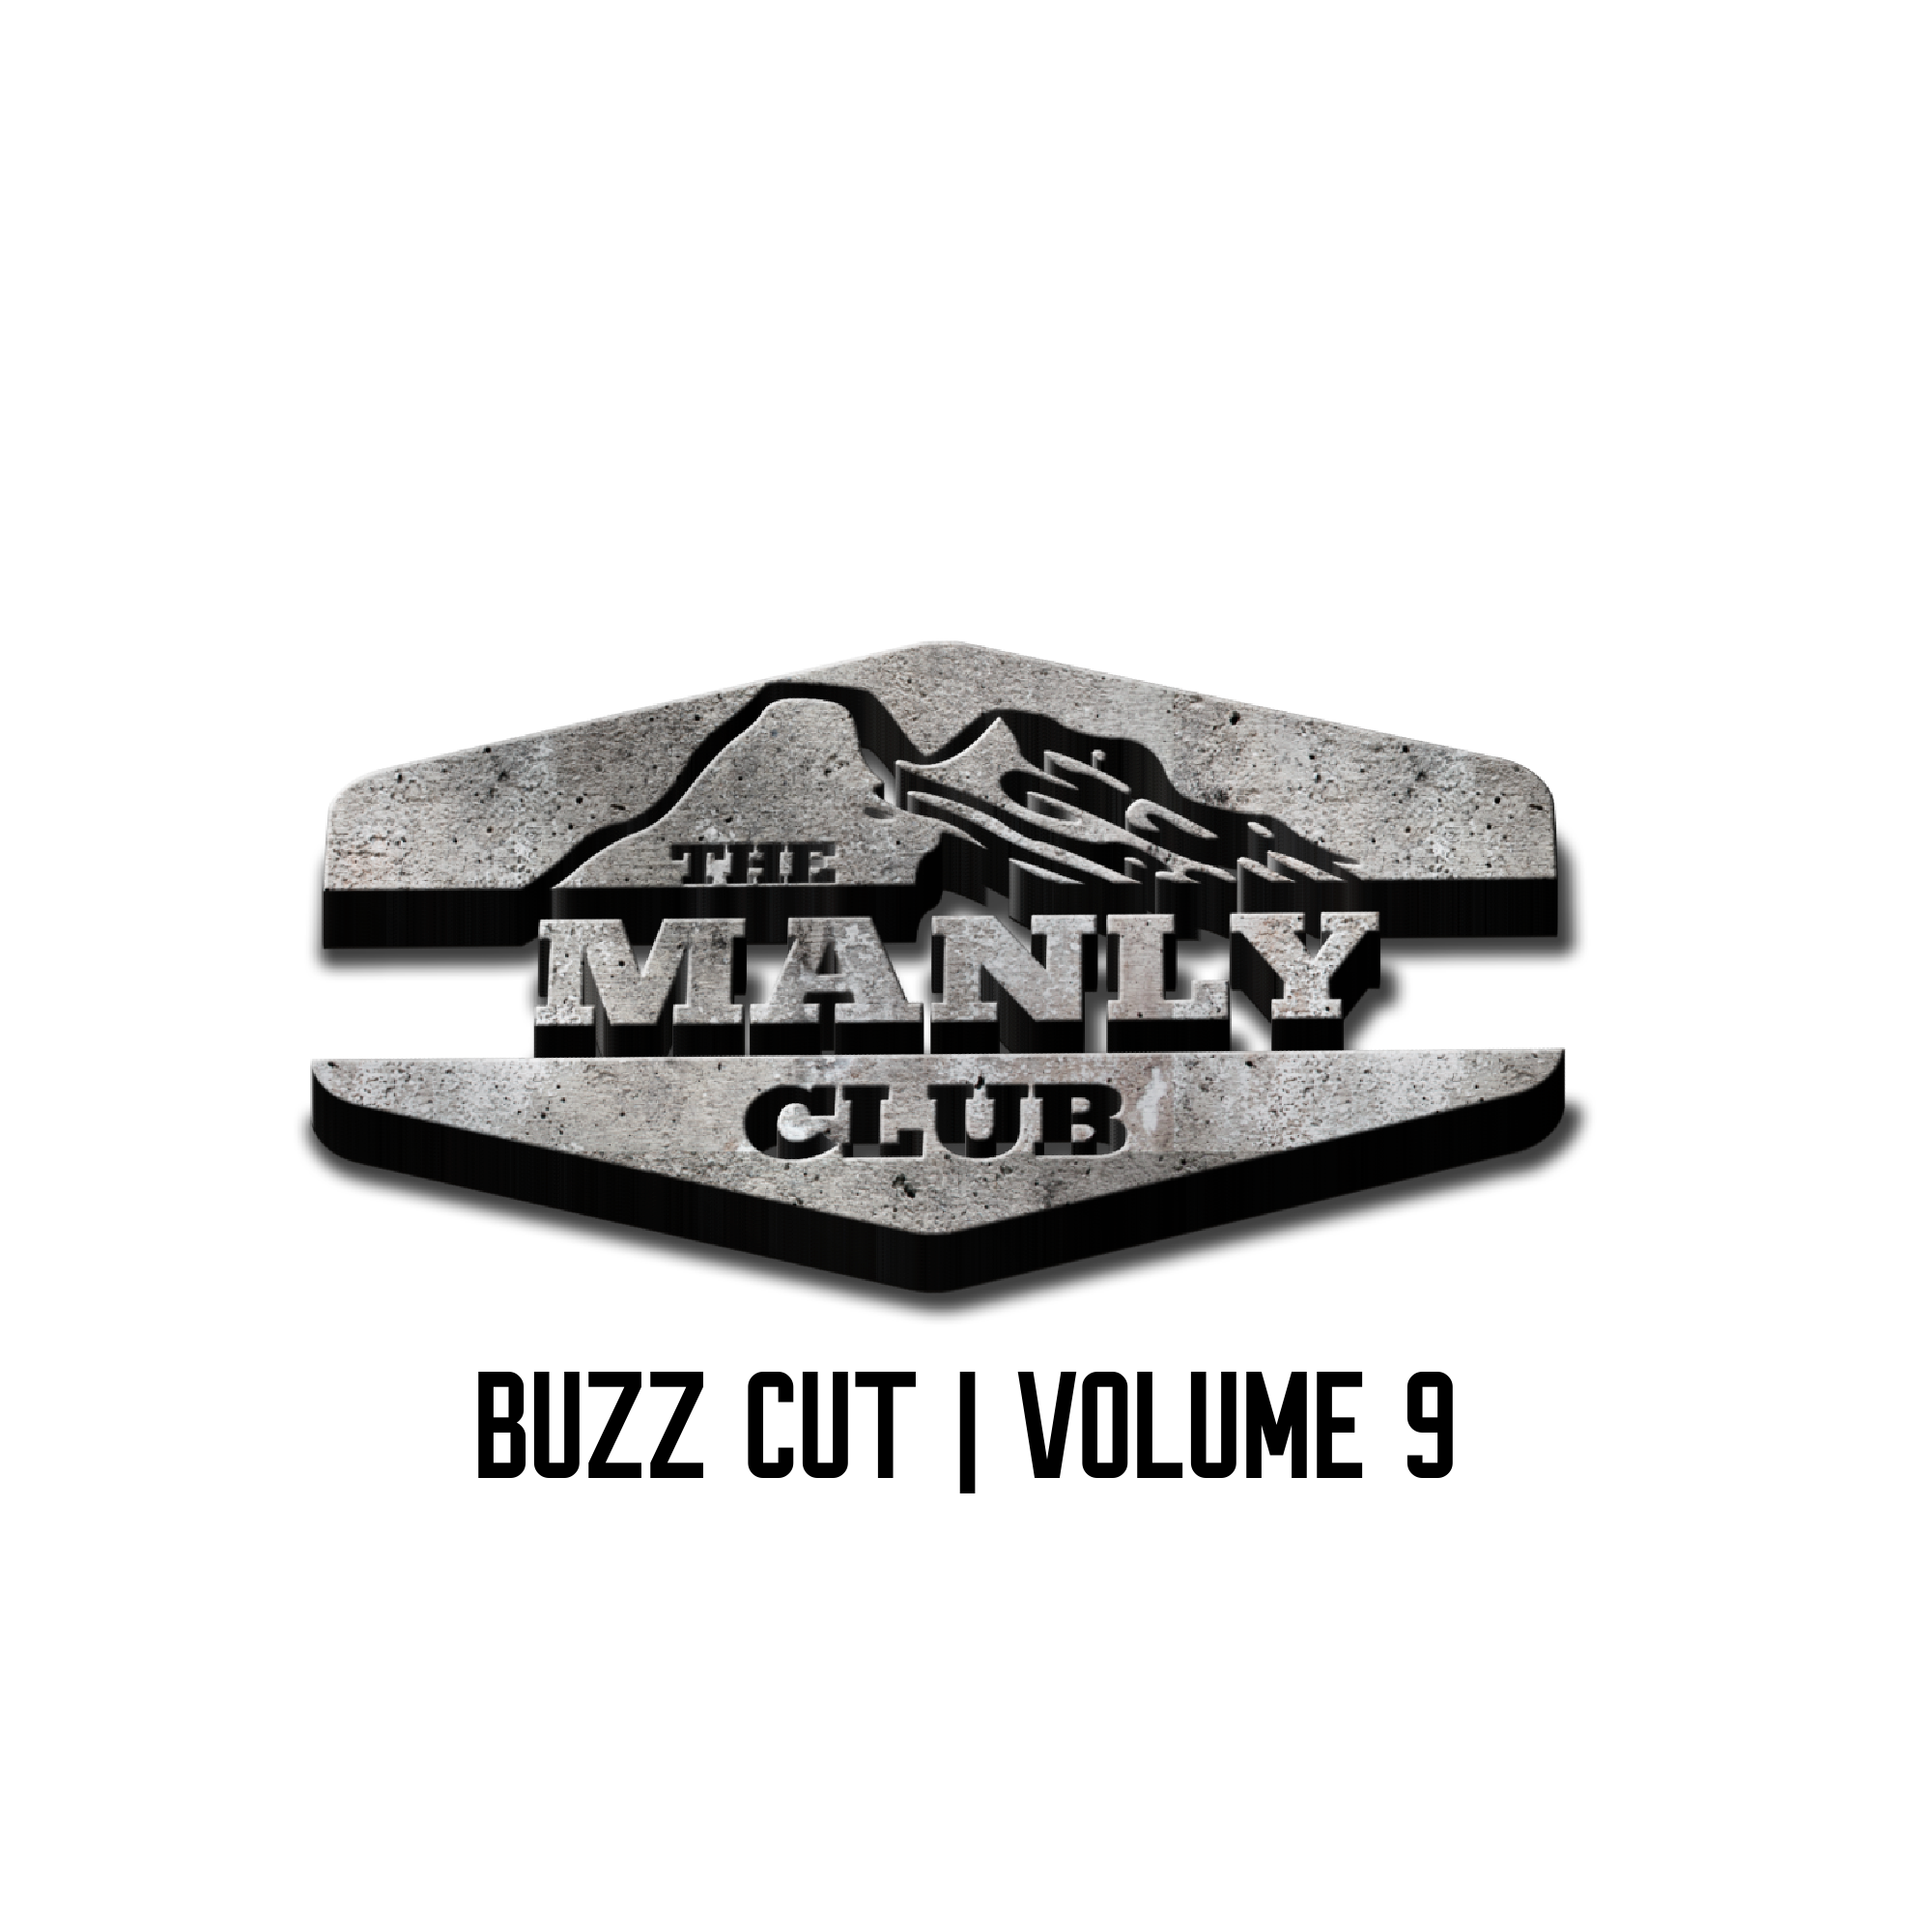 the manly club buzz cut volume 9